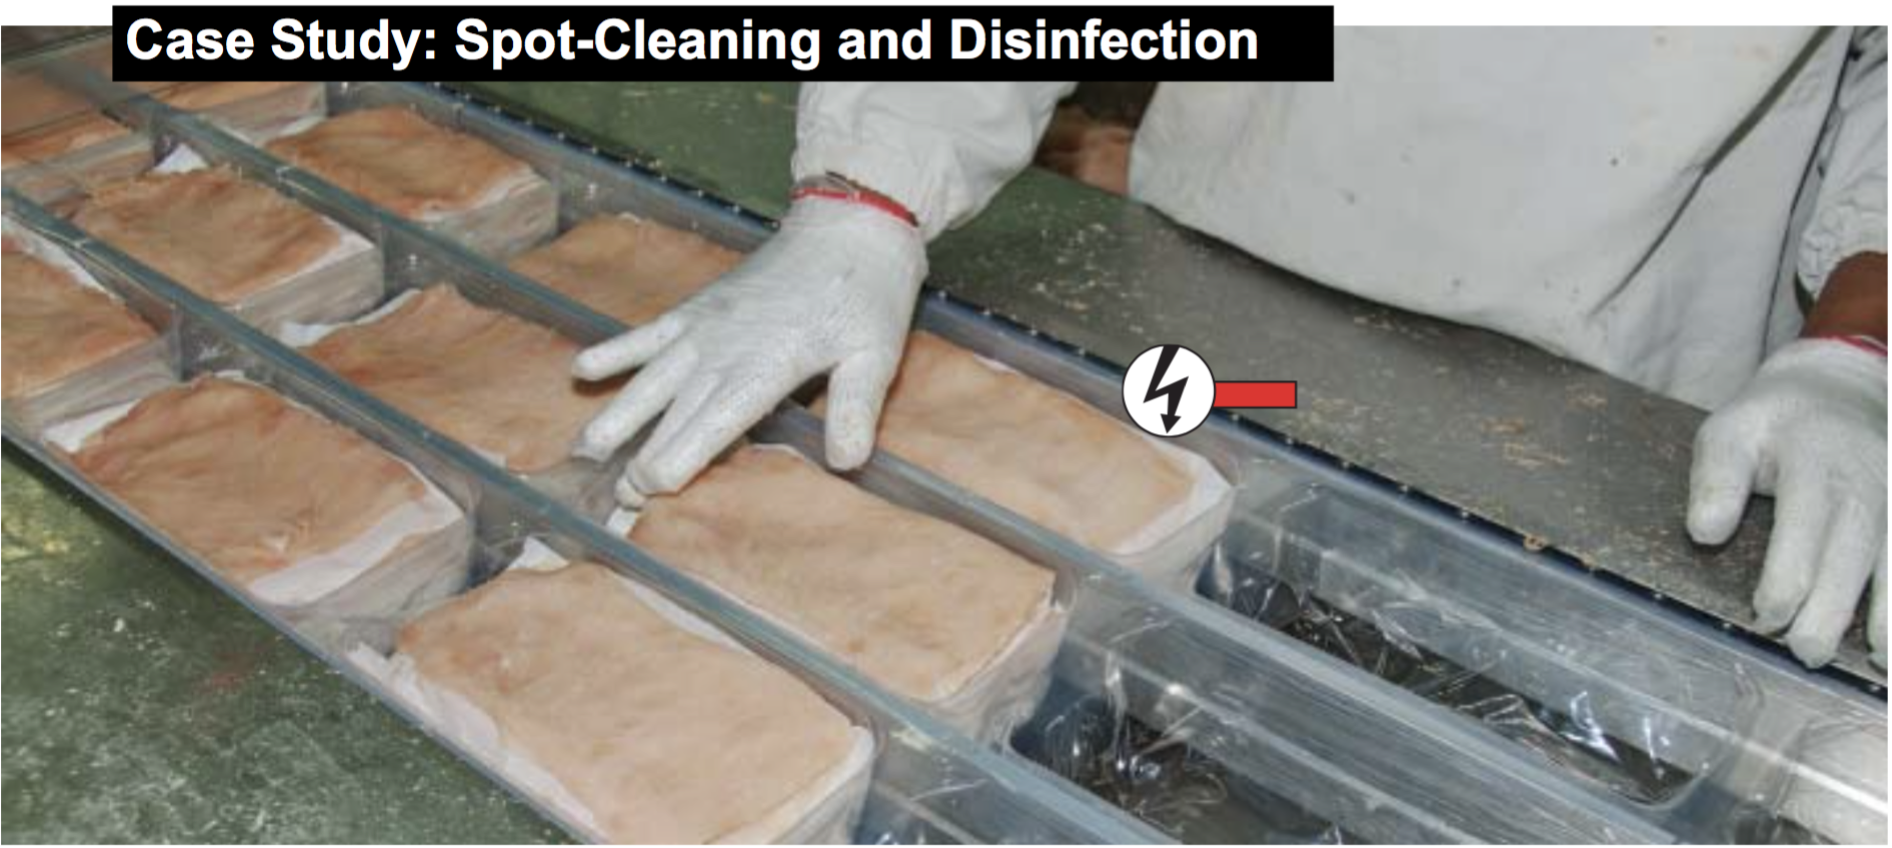 Case Study: Spot Cleaning and Disinfection in Food Processing Industry